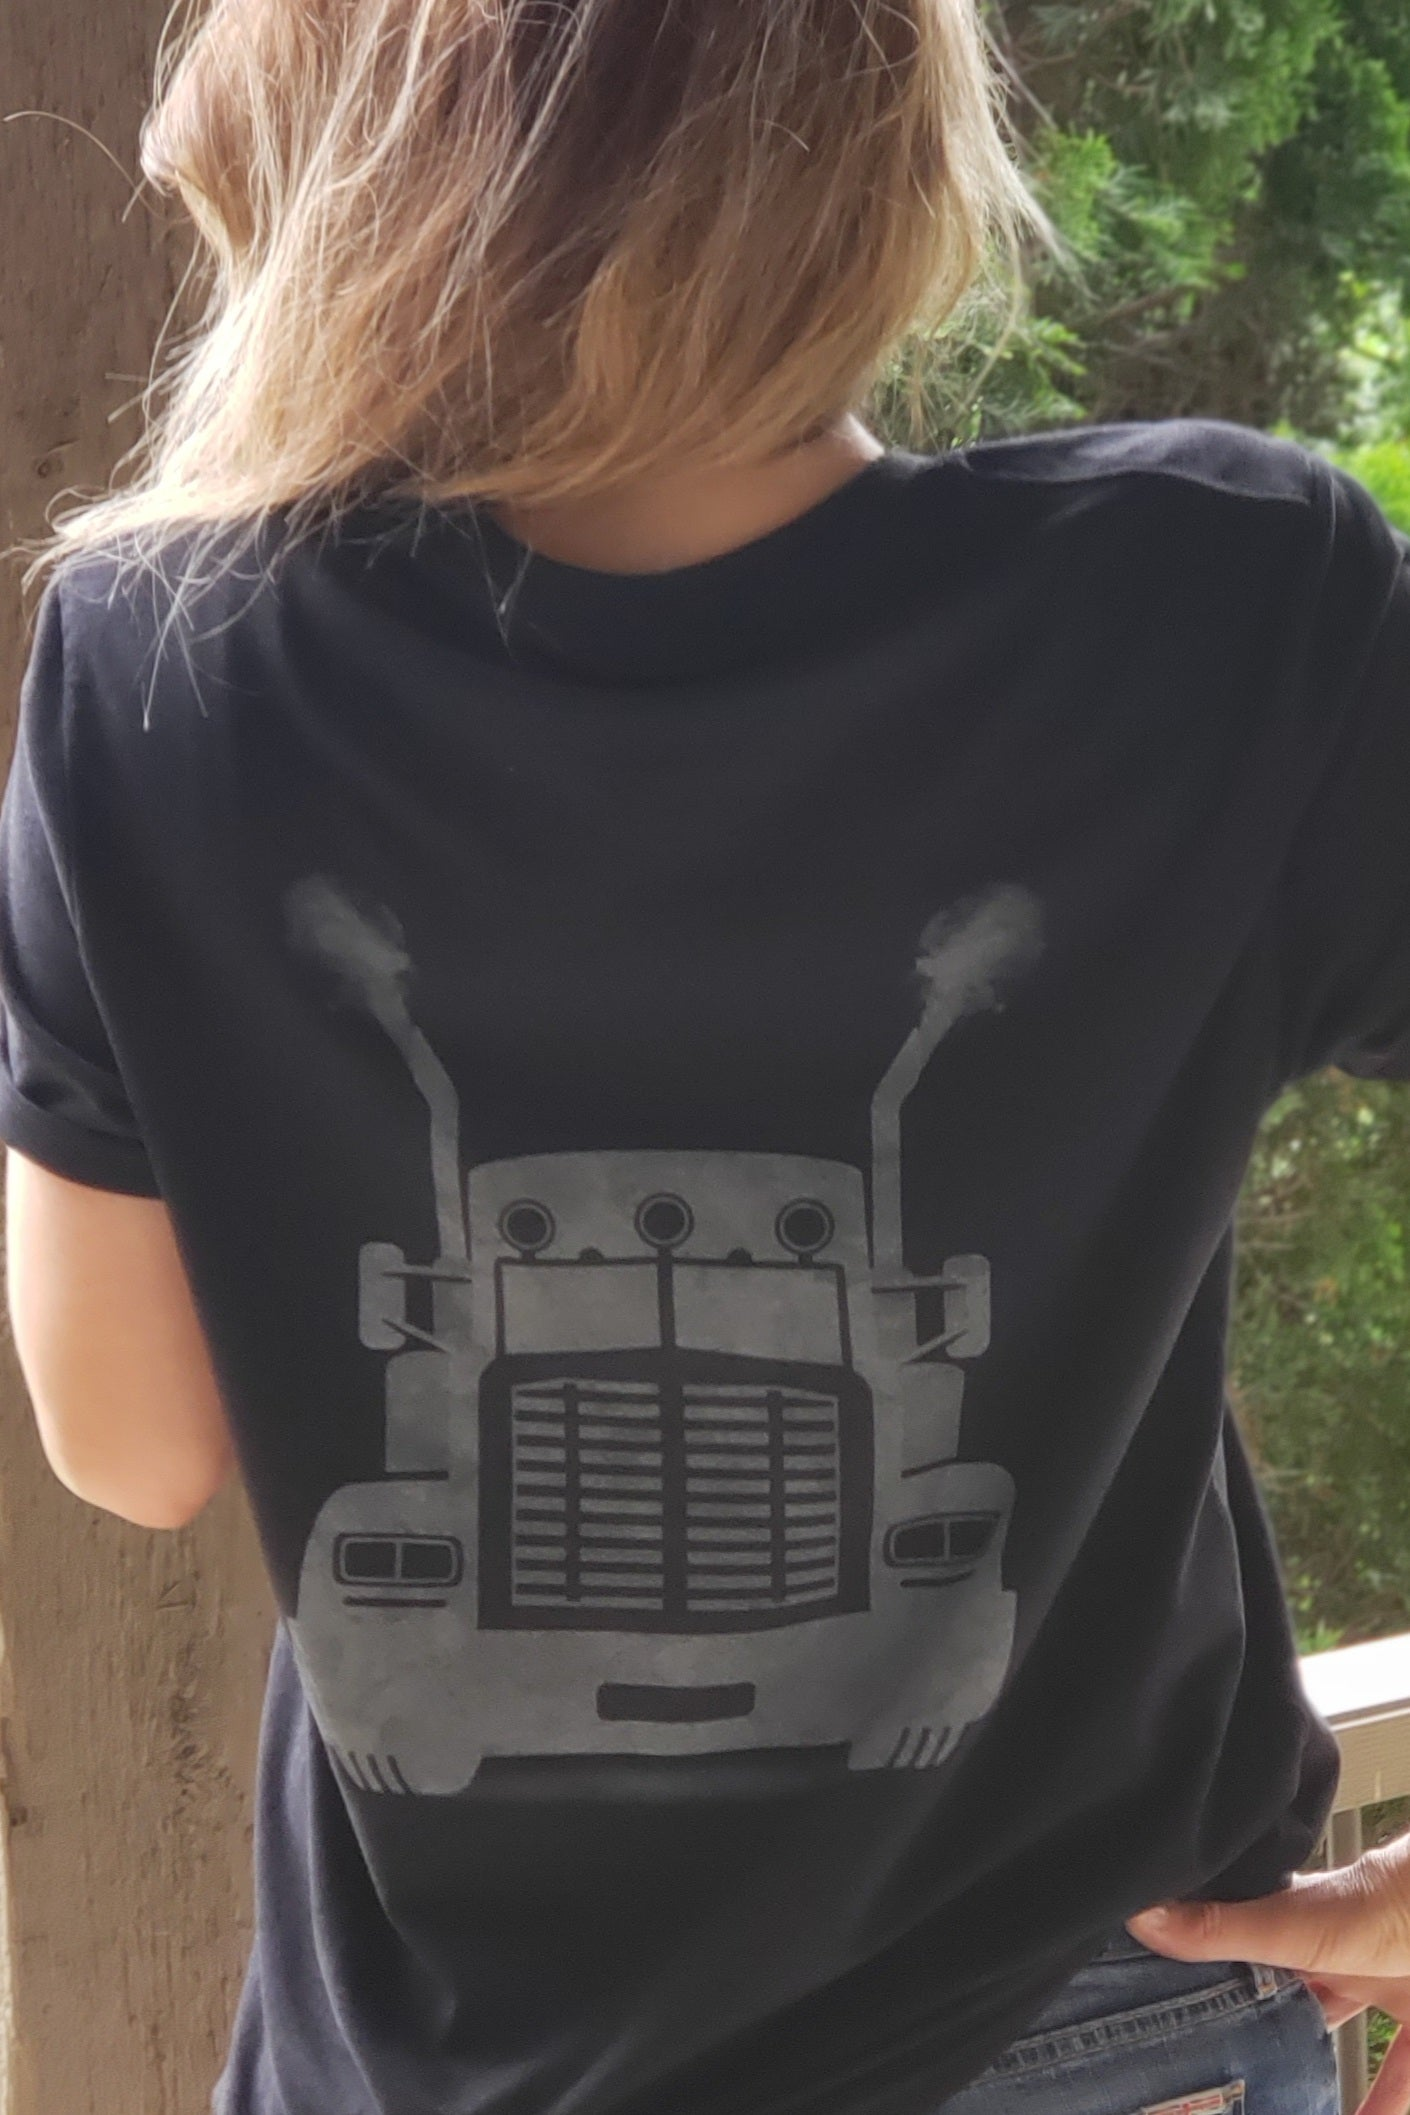 Trucker Tee - Do Work That Matters